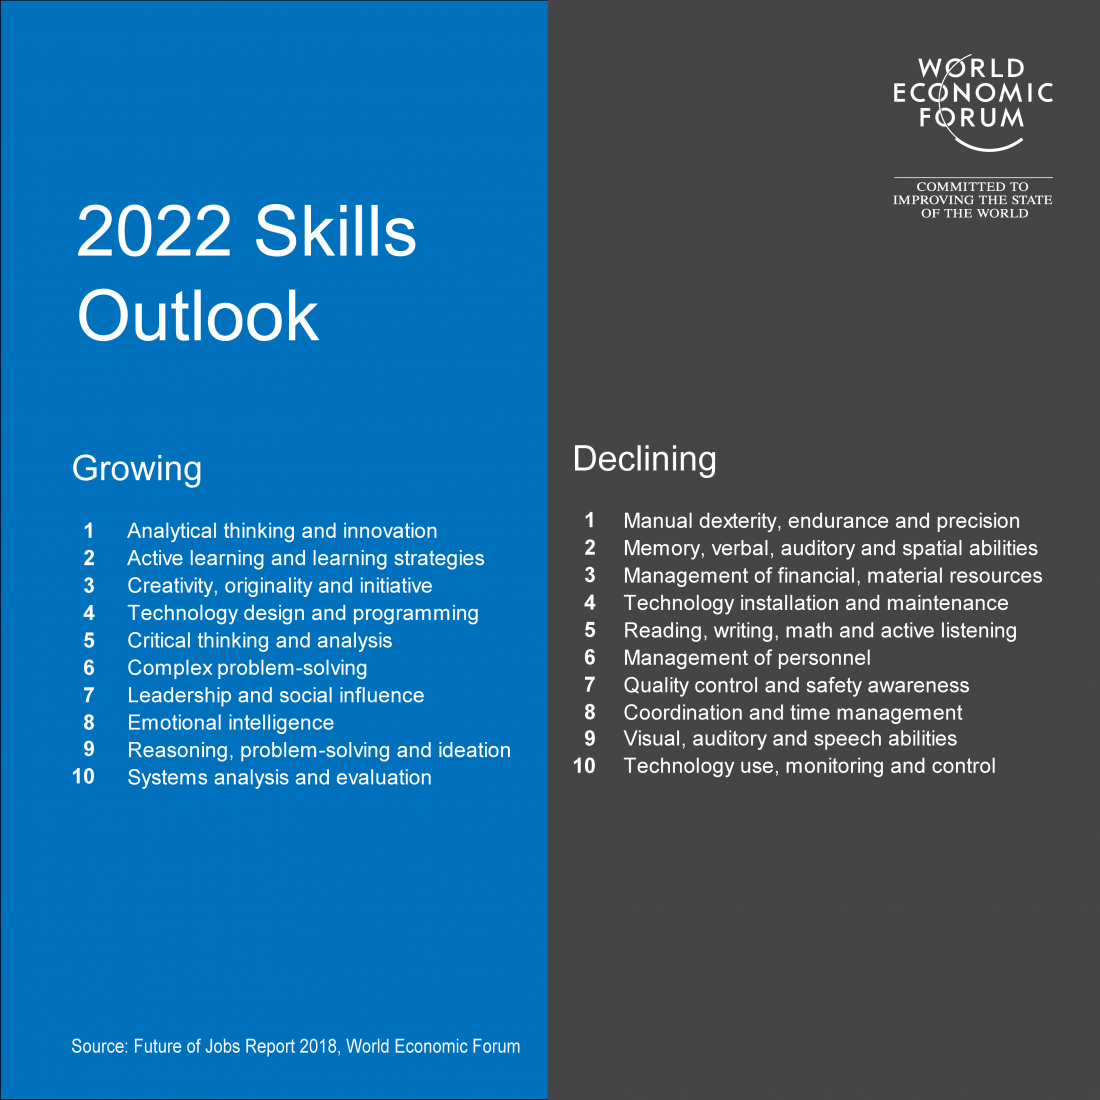 Skills needed in 2022